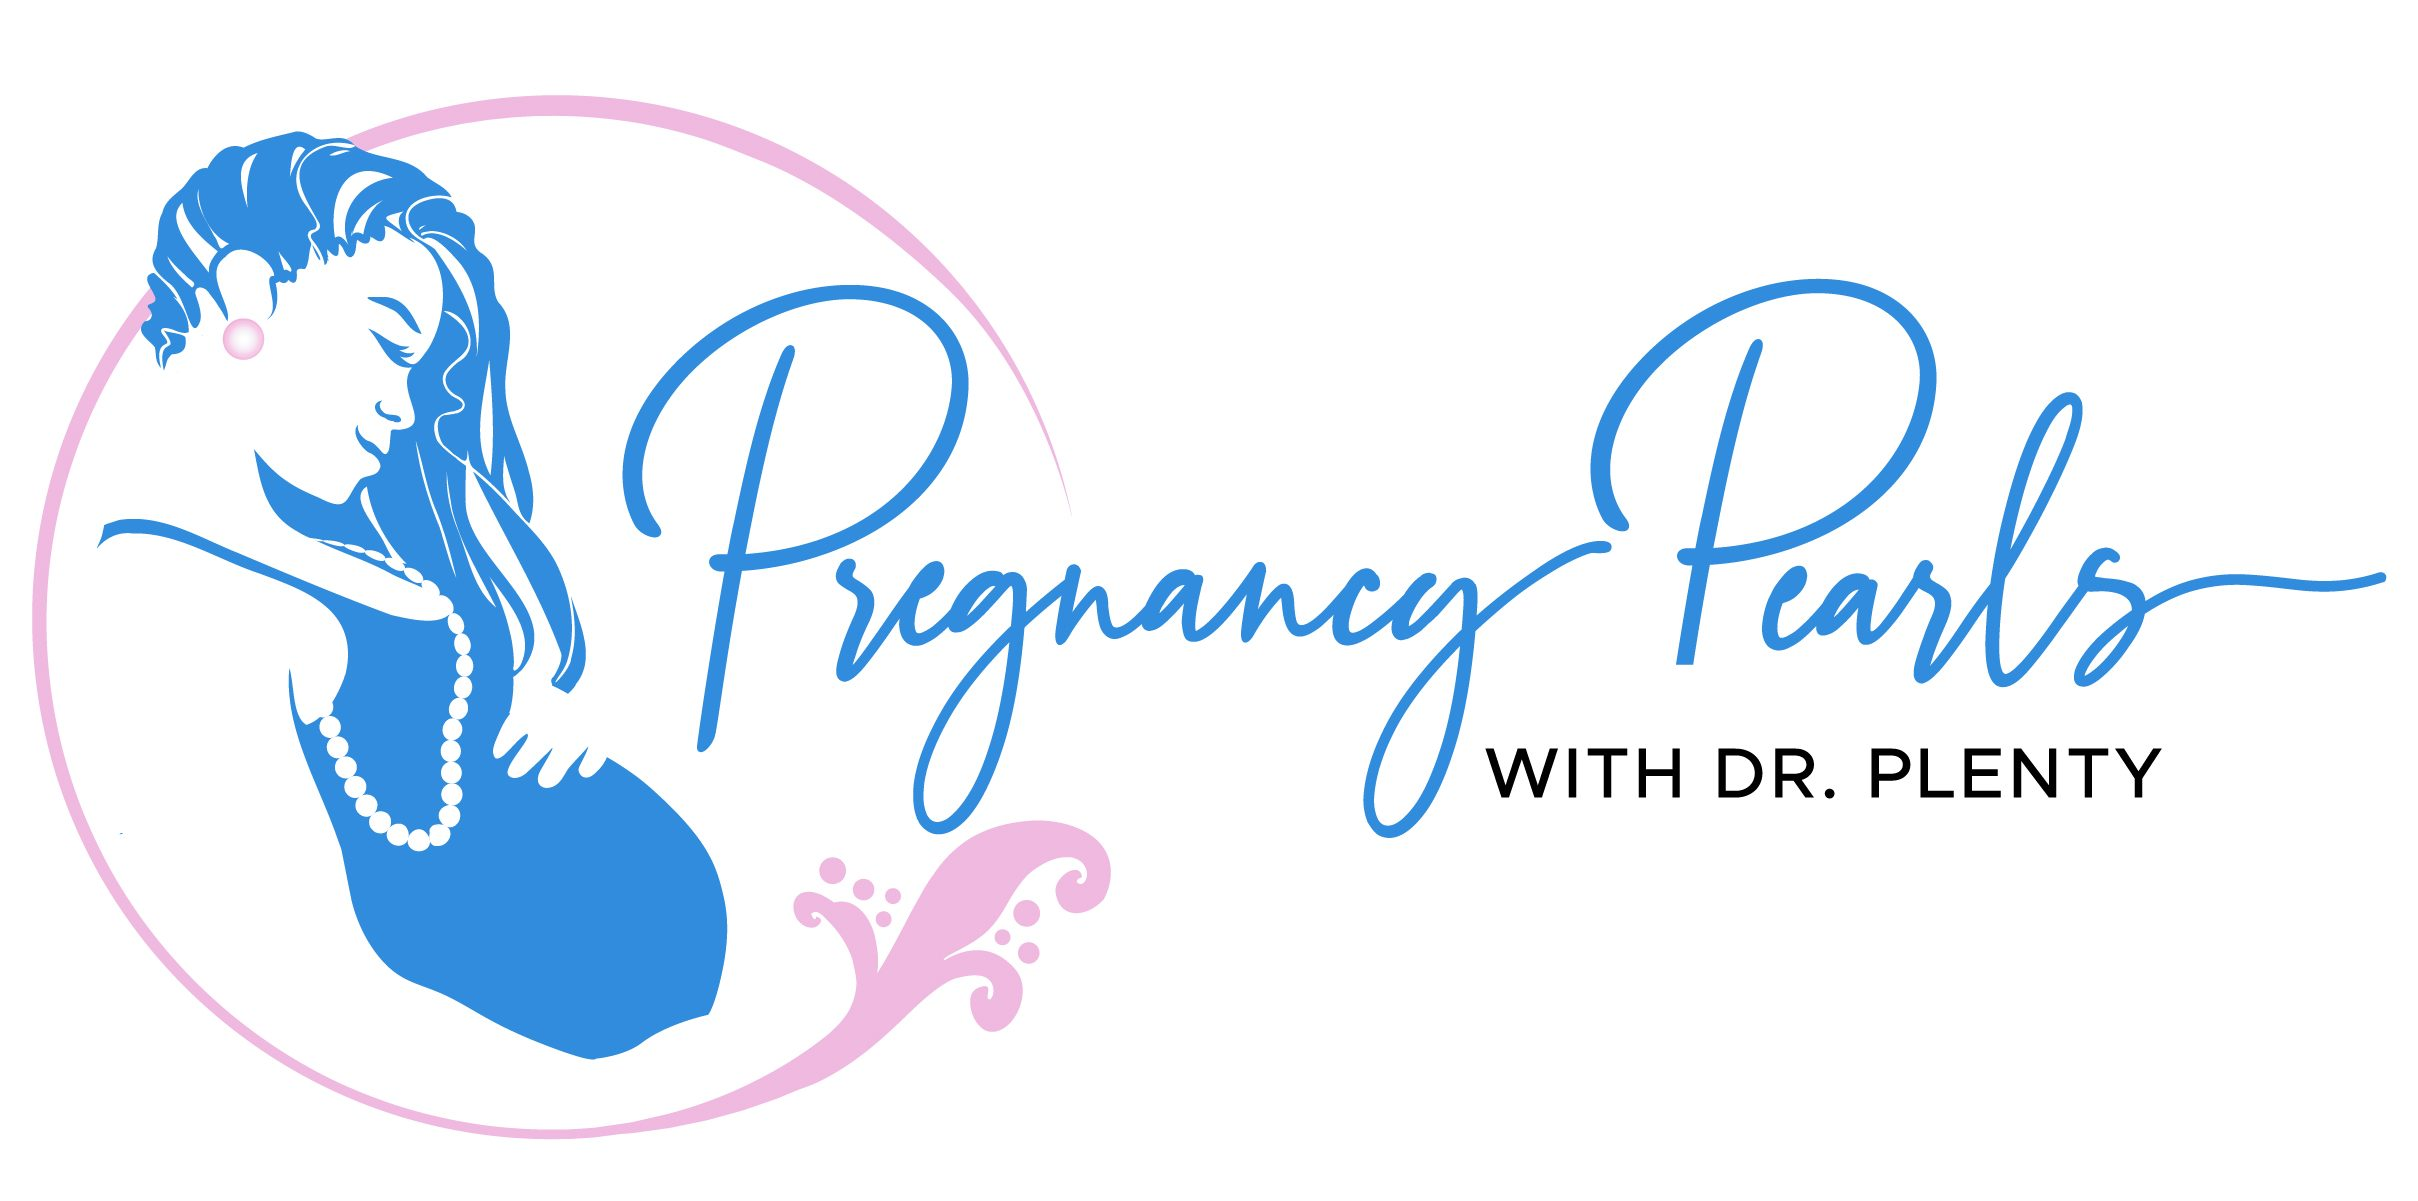 Pregnancy Pearls with Dr. Plenty